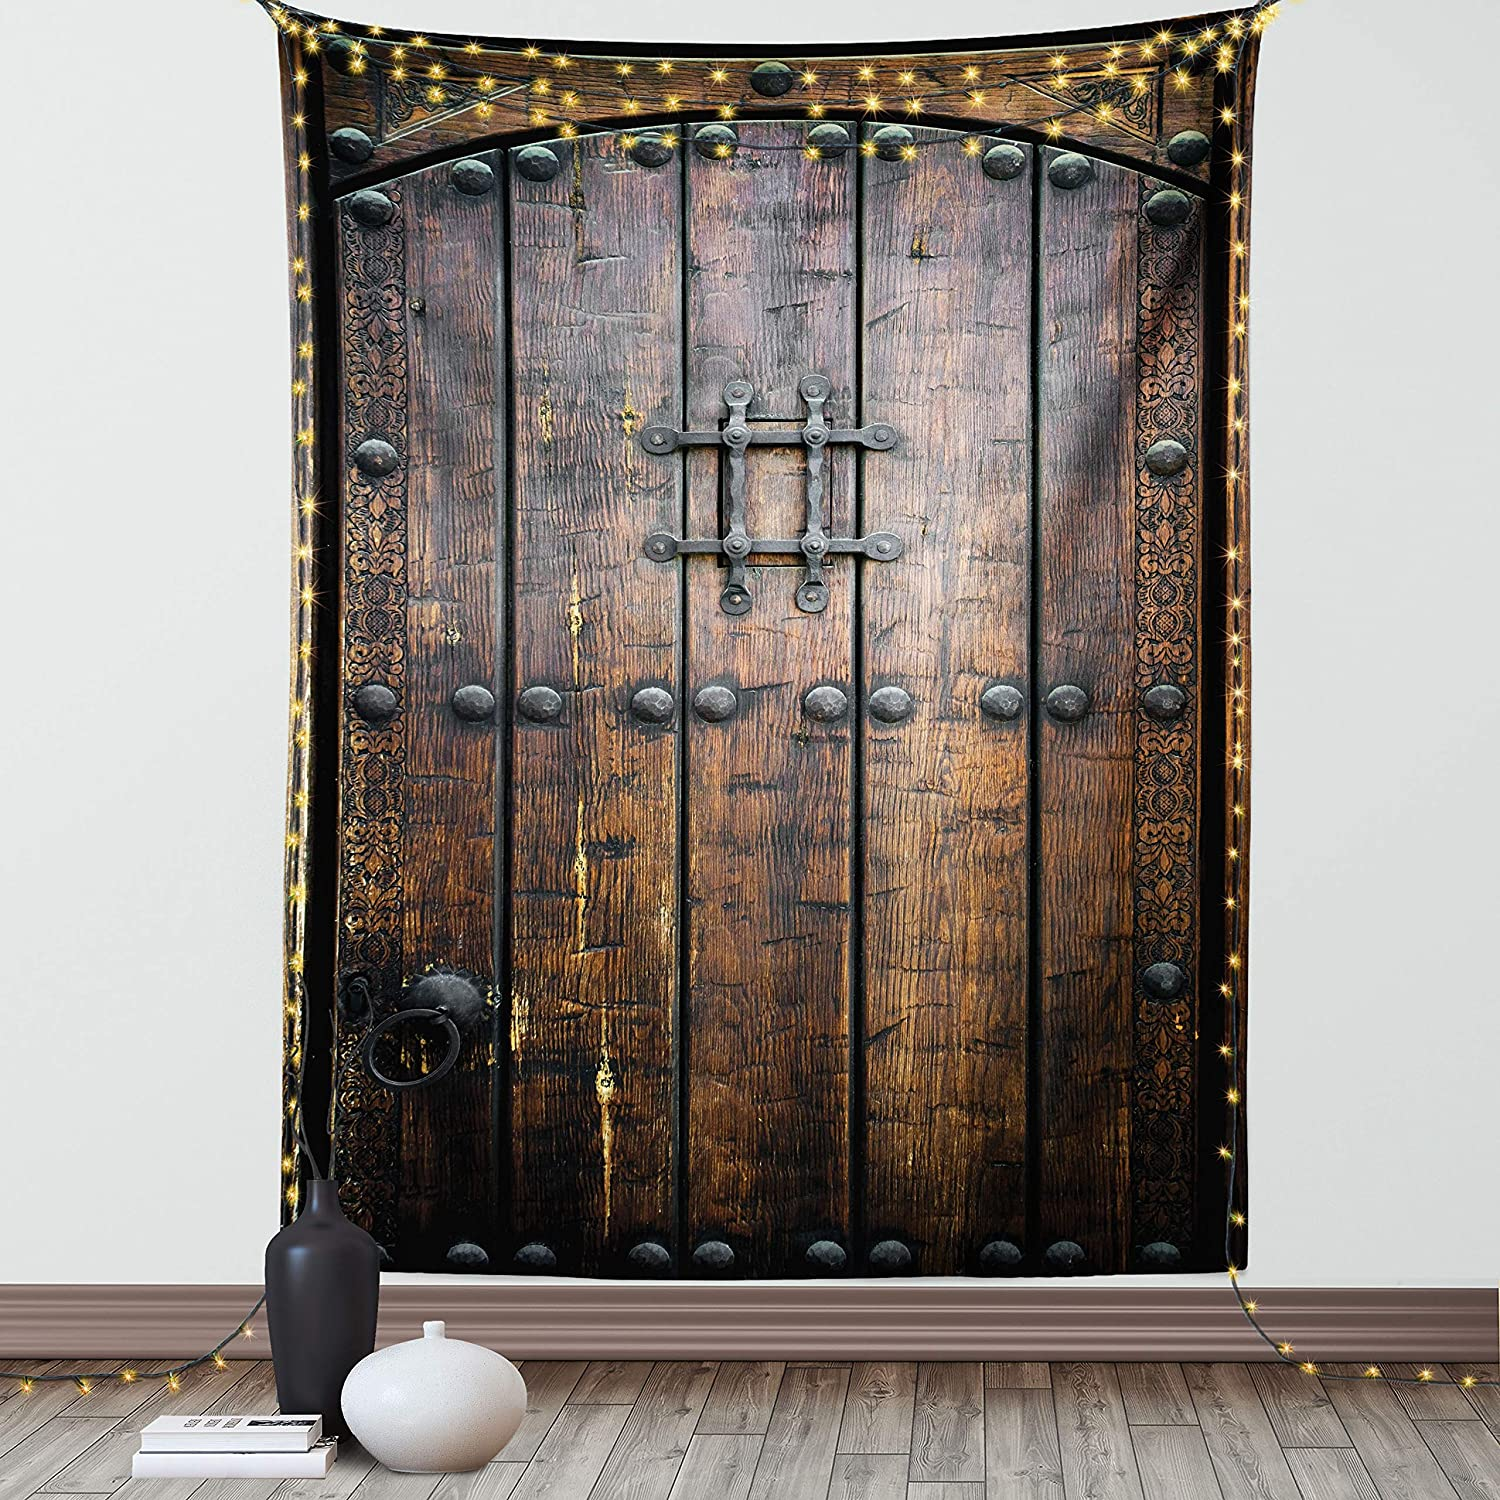 Ambesonne Rustic Tapestry, Wooden Door Historical Vintage Exterior Medieval Structure Print, Wall Hanging for Bedroom Living Room Dorm Decor, 40